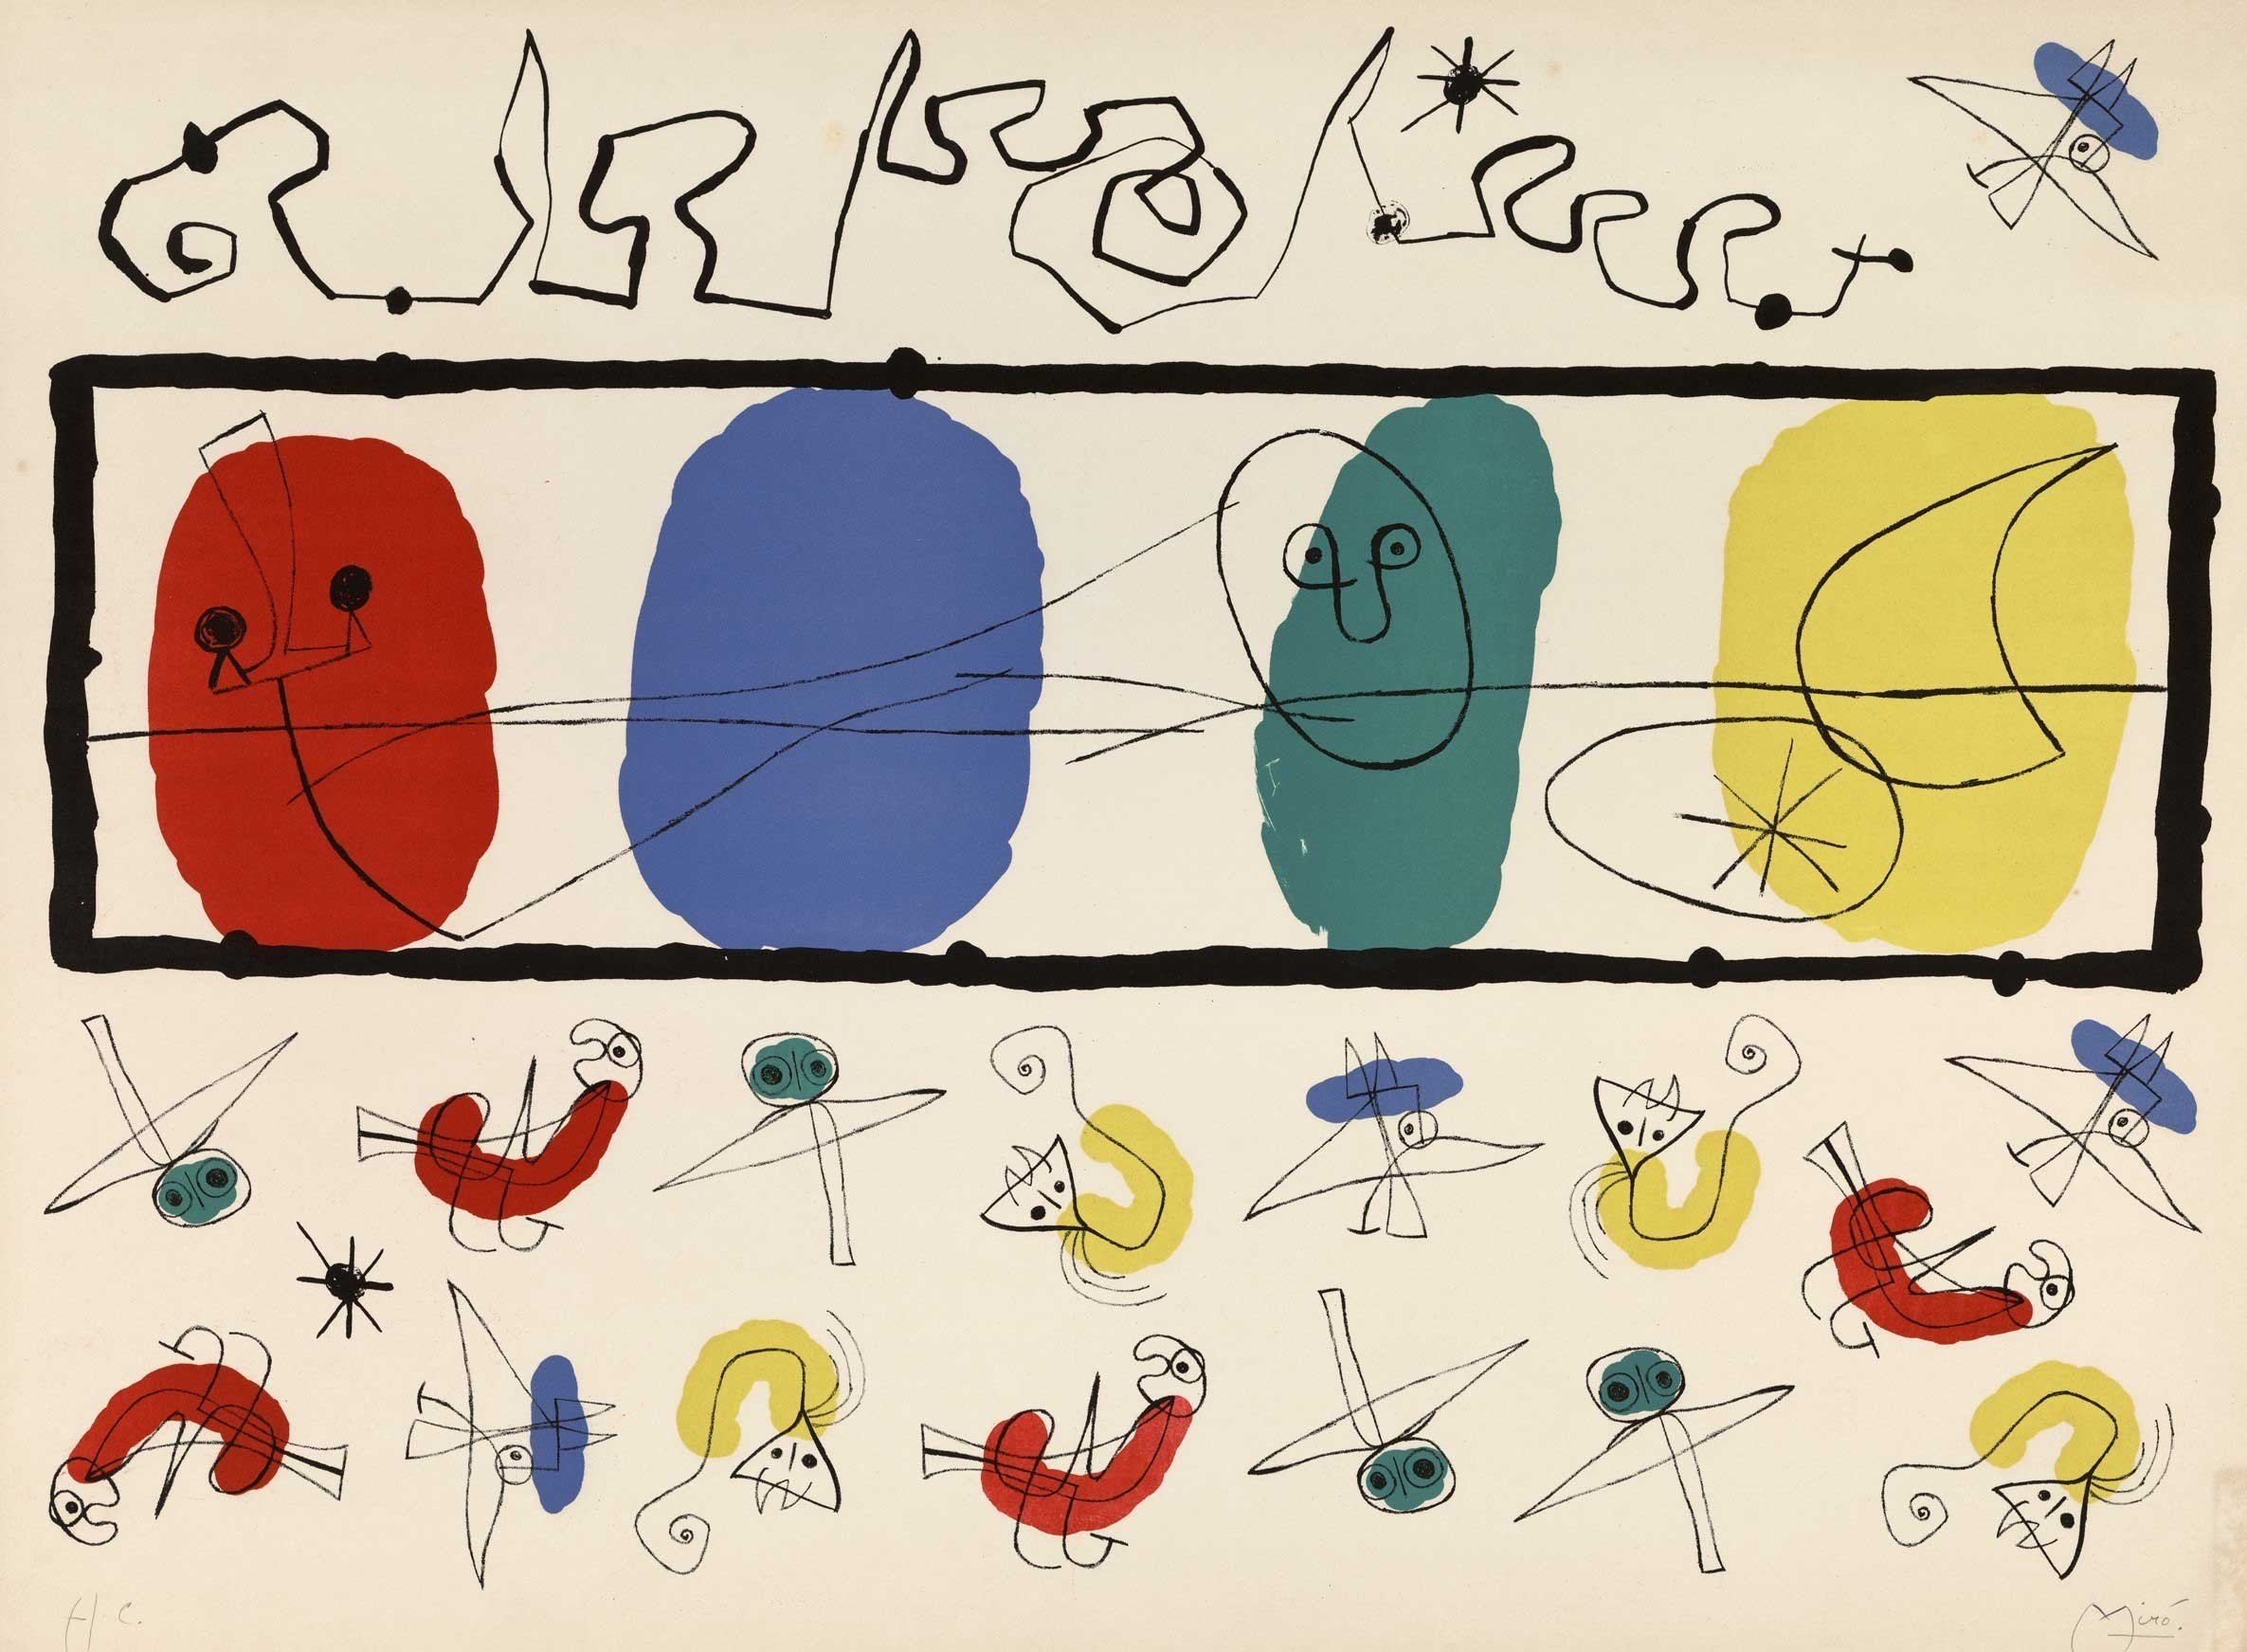 Joan Miro, 'Birds,' 1956, Lithograph, 52.2 by 72.3 centimeters. (Courtesy of SSM)